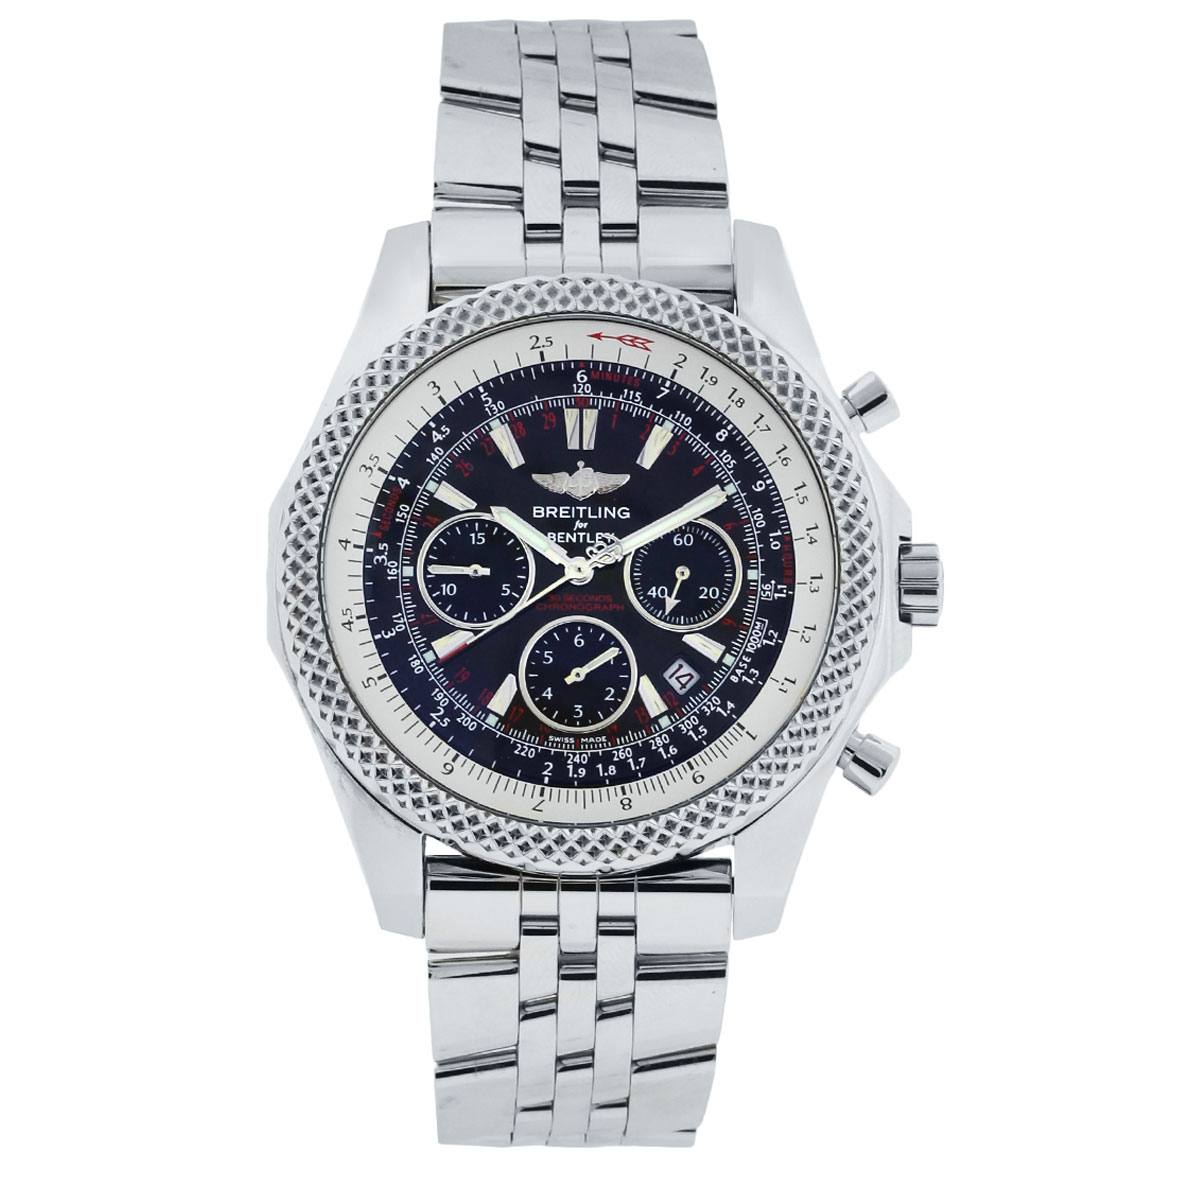 Breitling For Bentley A25364 Stainless Steel Black Dial Watch